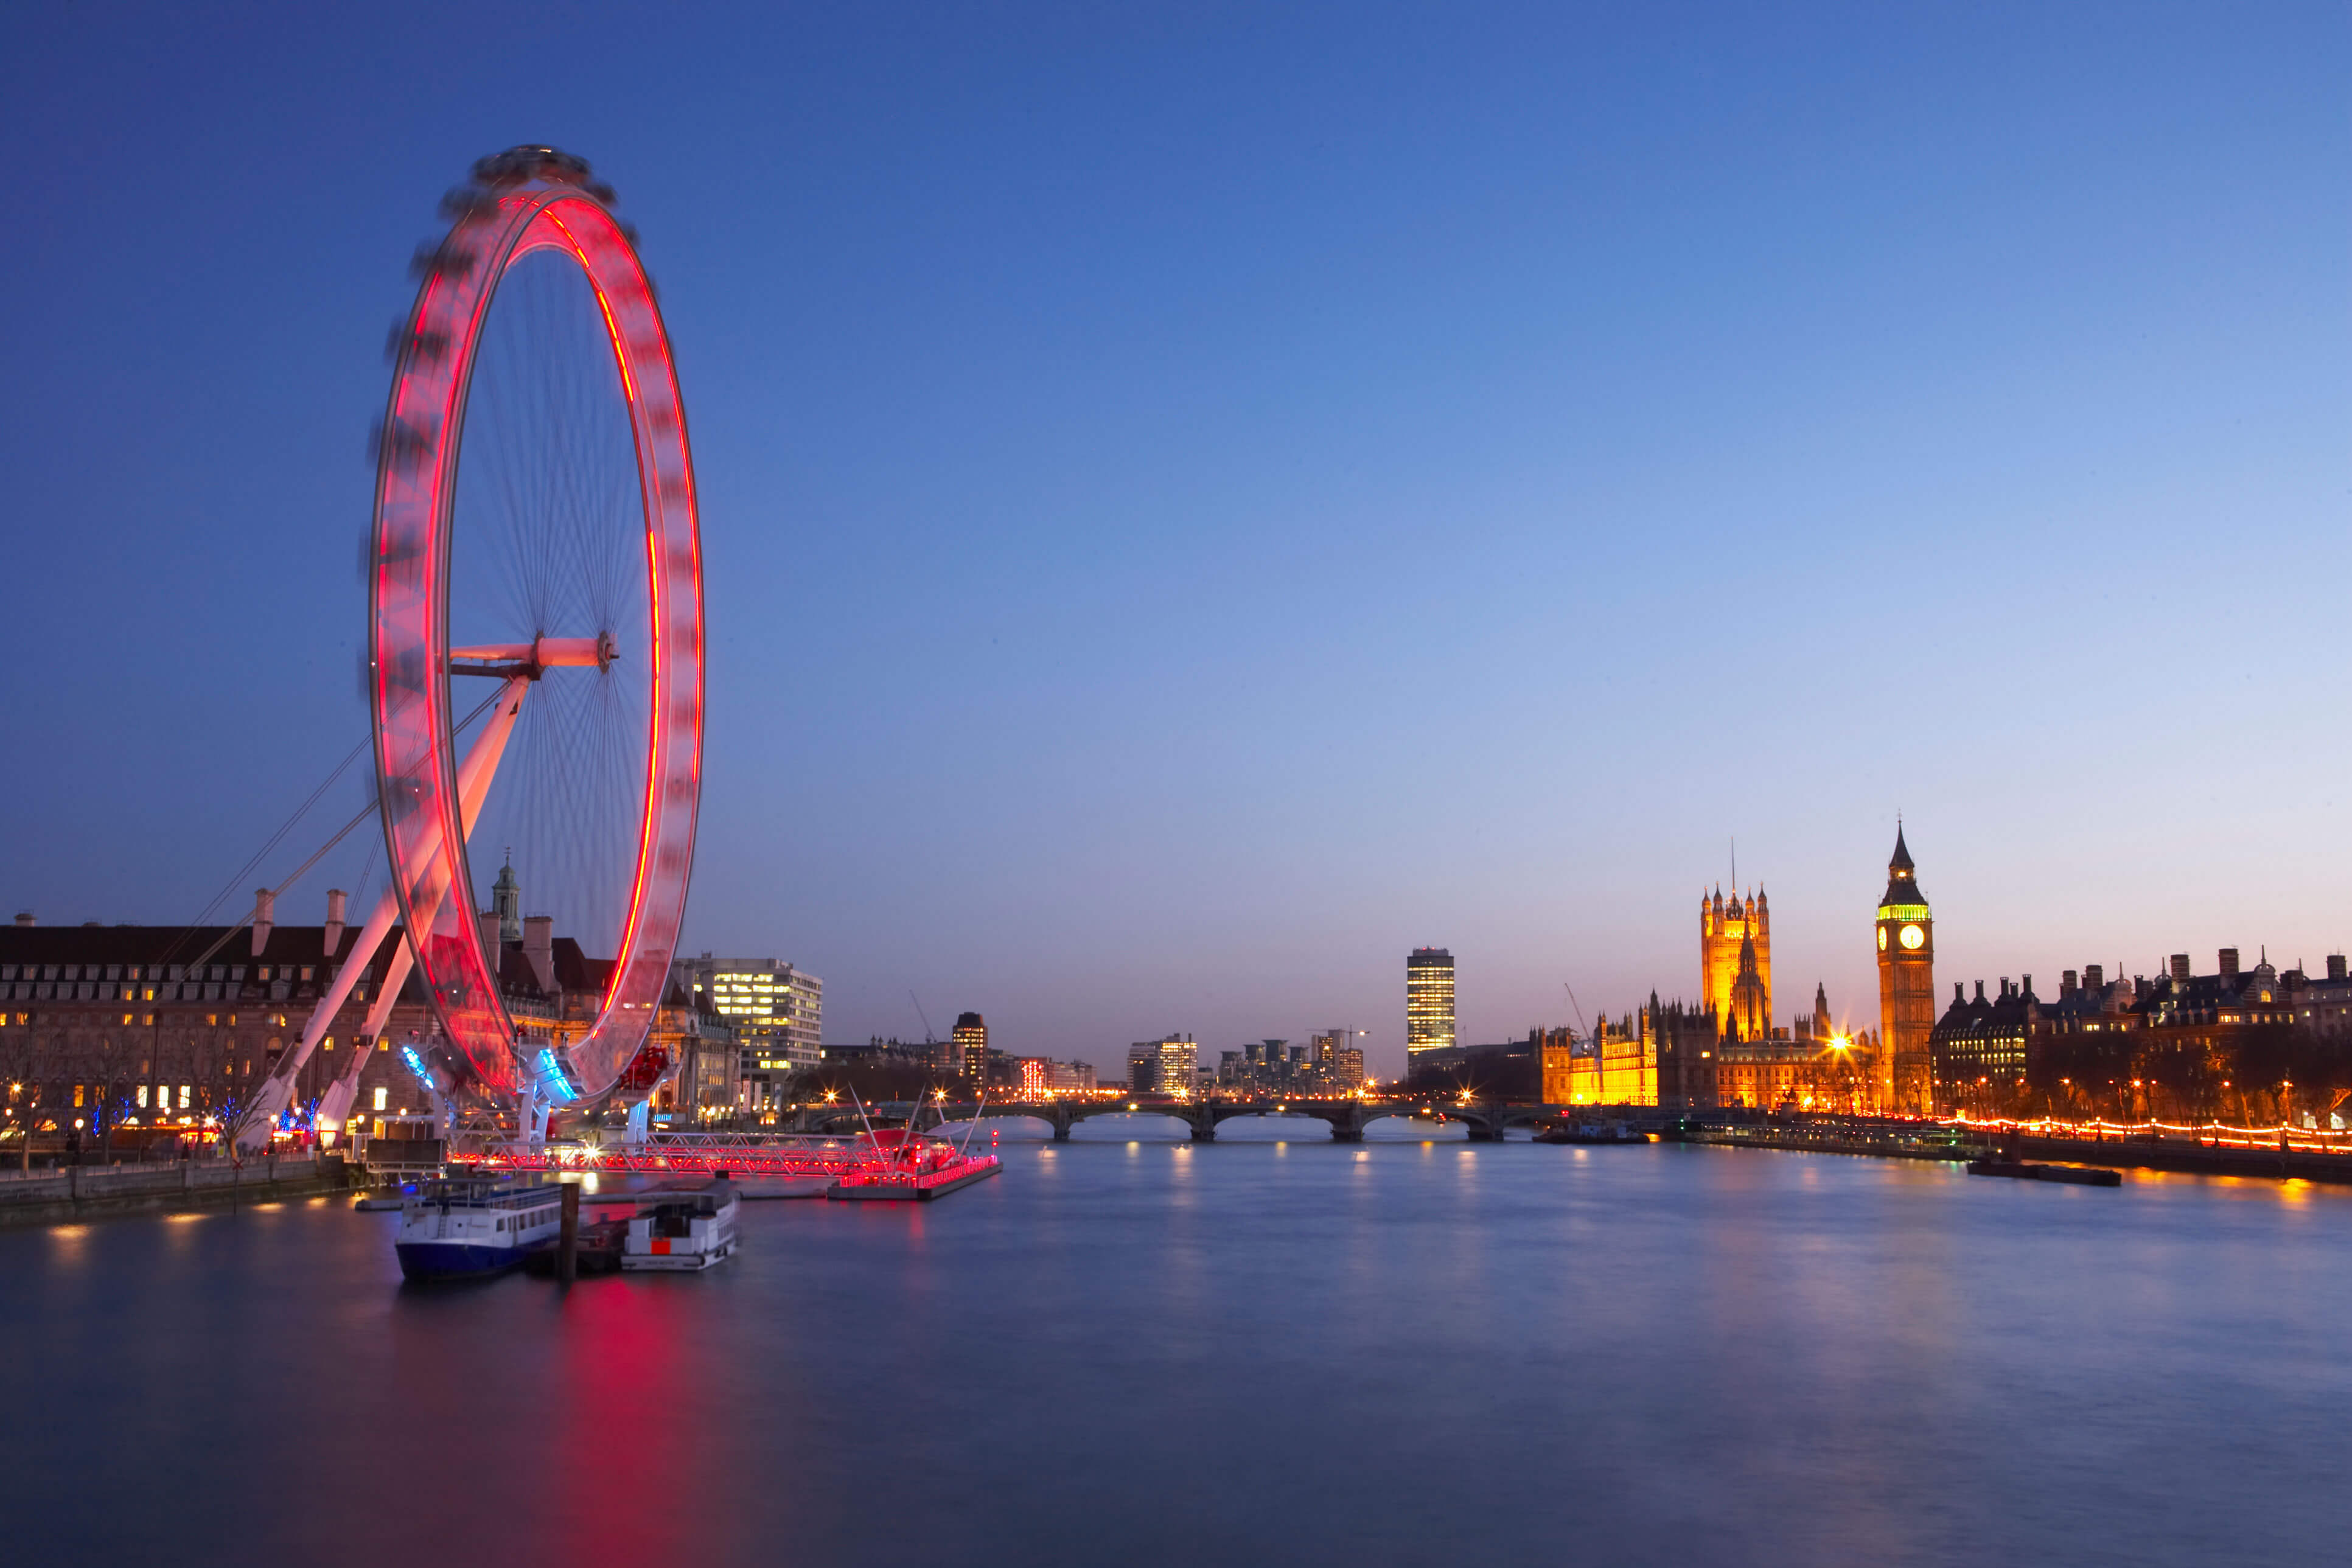 Home Page for South Bank | South Bank London